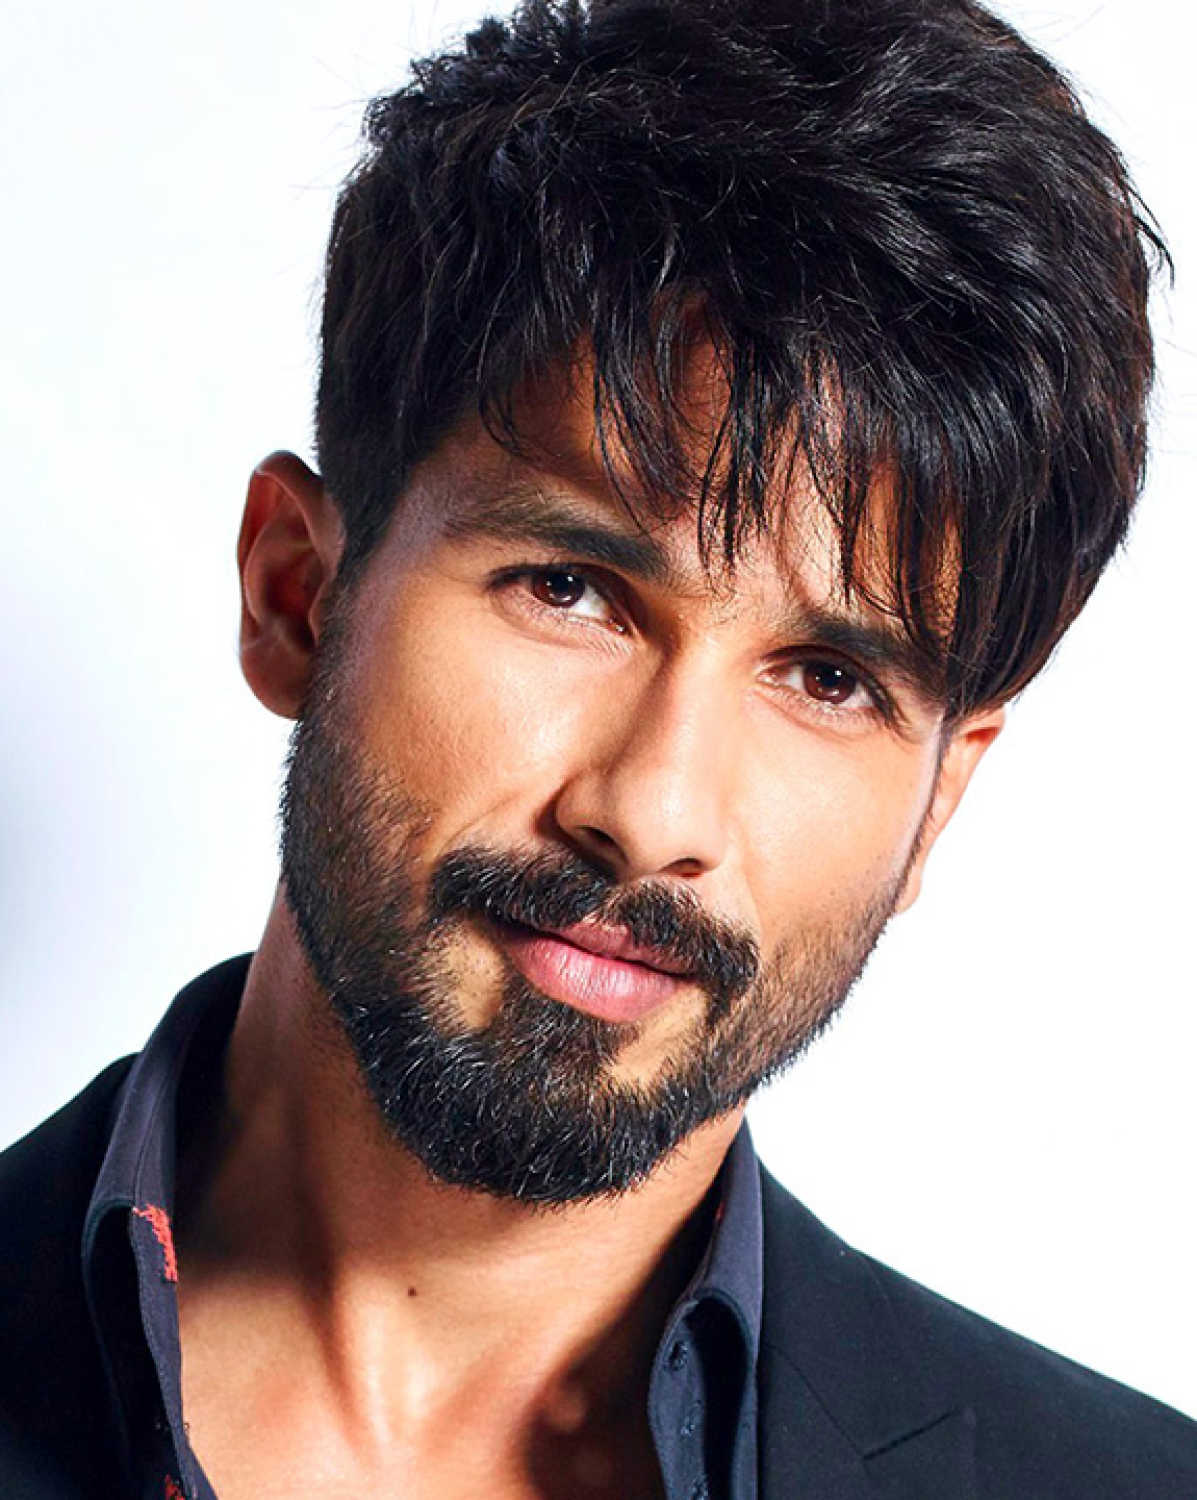 Shahid Kapoor Movies Filmography Biography And Songs Cinestaan Com